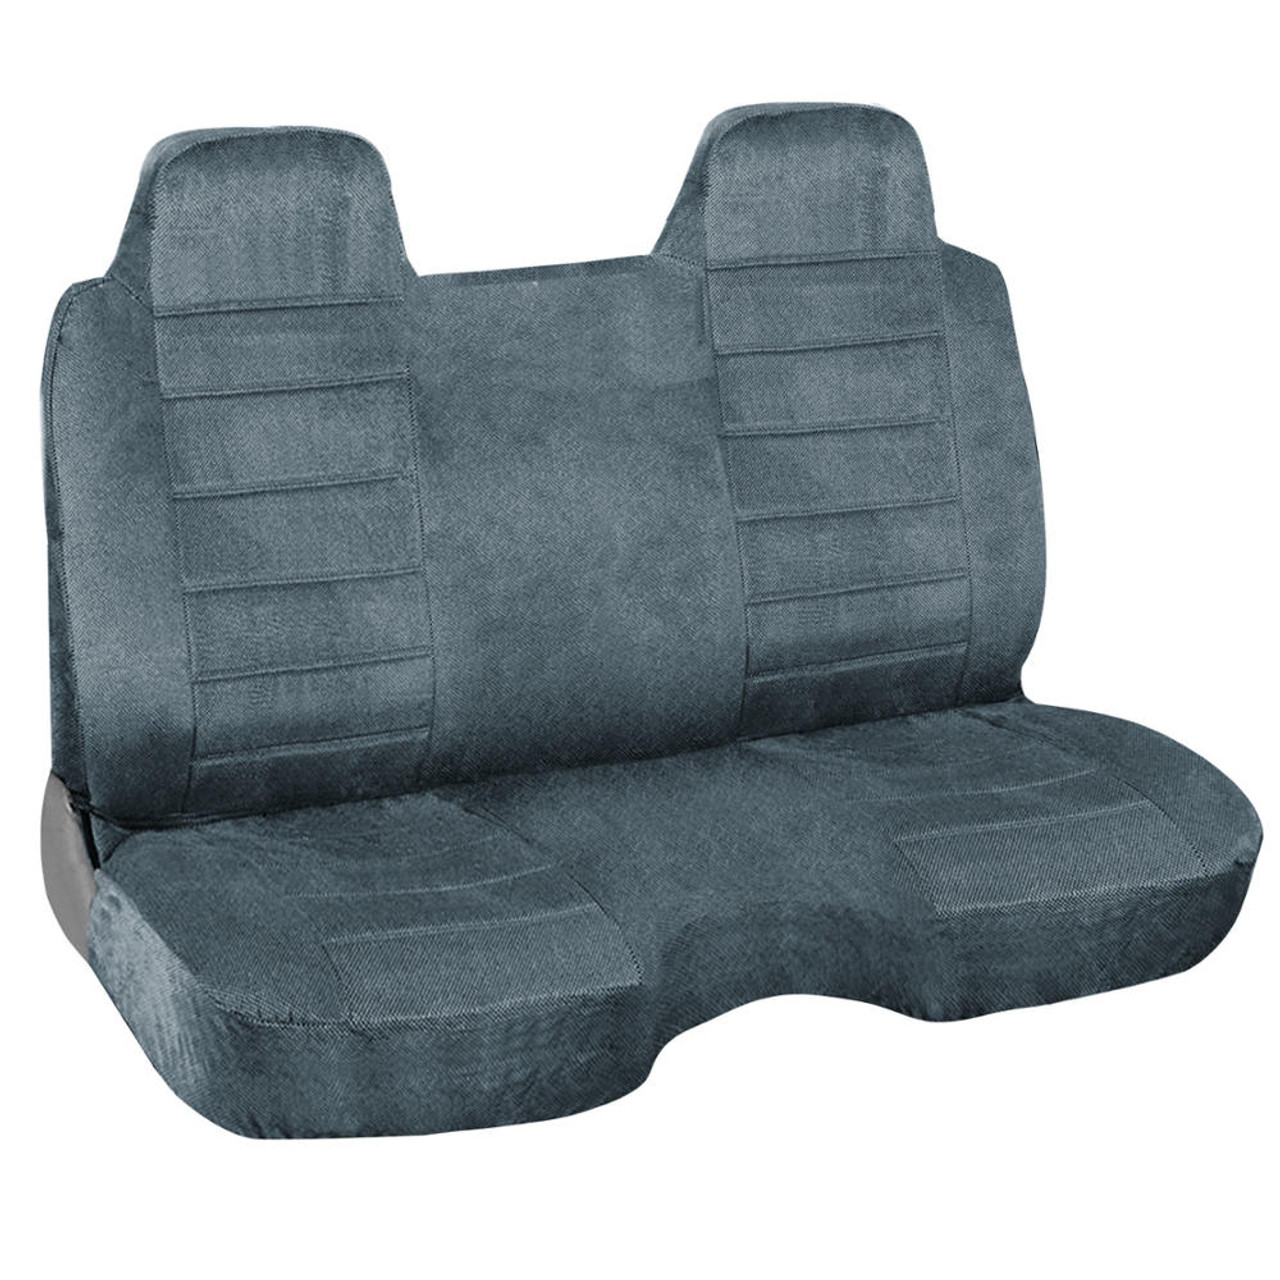 Marvelous Pickup Truck Bench Seat Cover For Stick Shift W Thick Regal Velour Fabric For Built In Headrest Caraccident5 Cool Chair Designs And Ideas Caraccident5Info